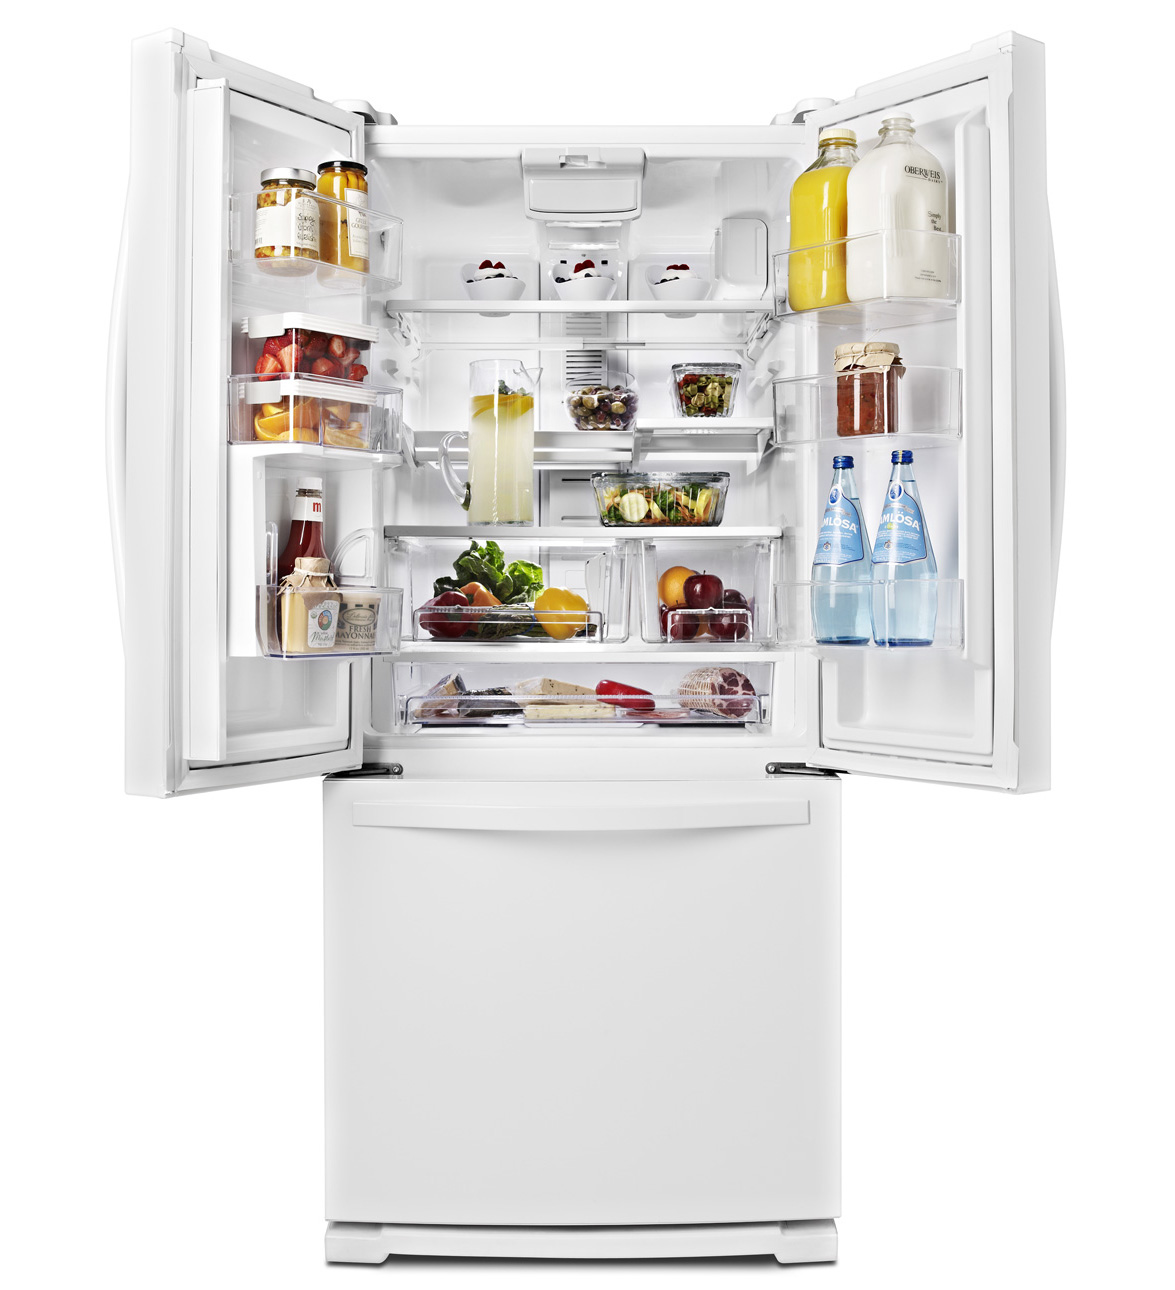 30 Inch Wide French Door Refrigerator With Exterior Water